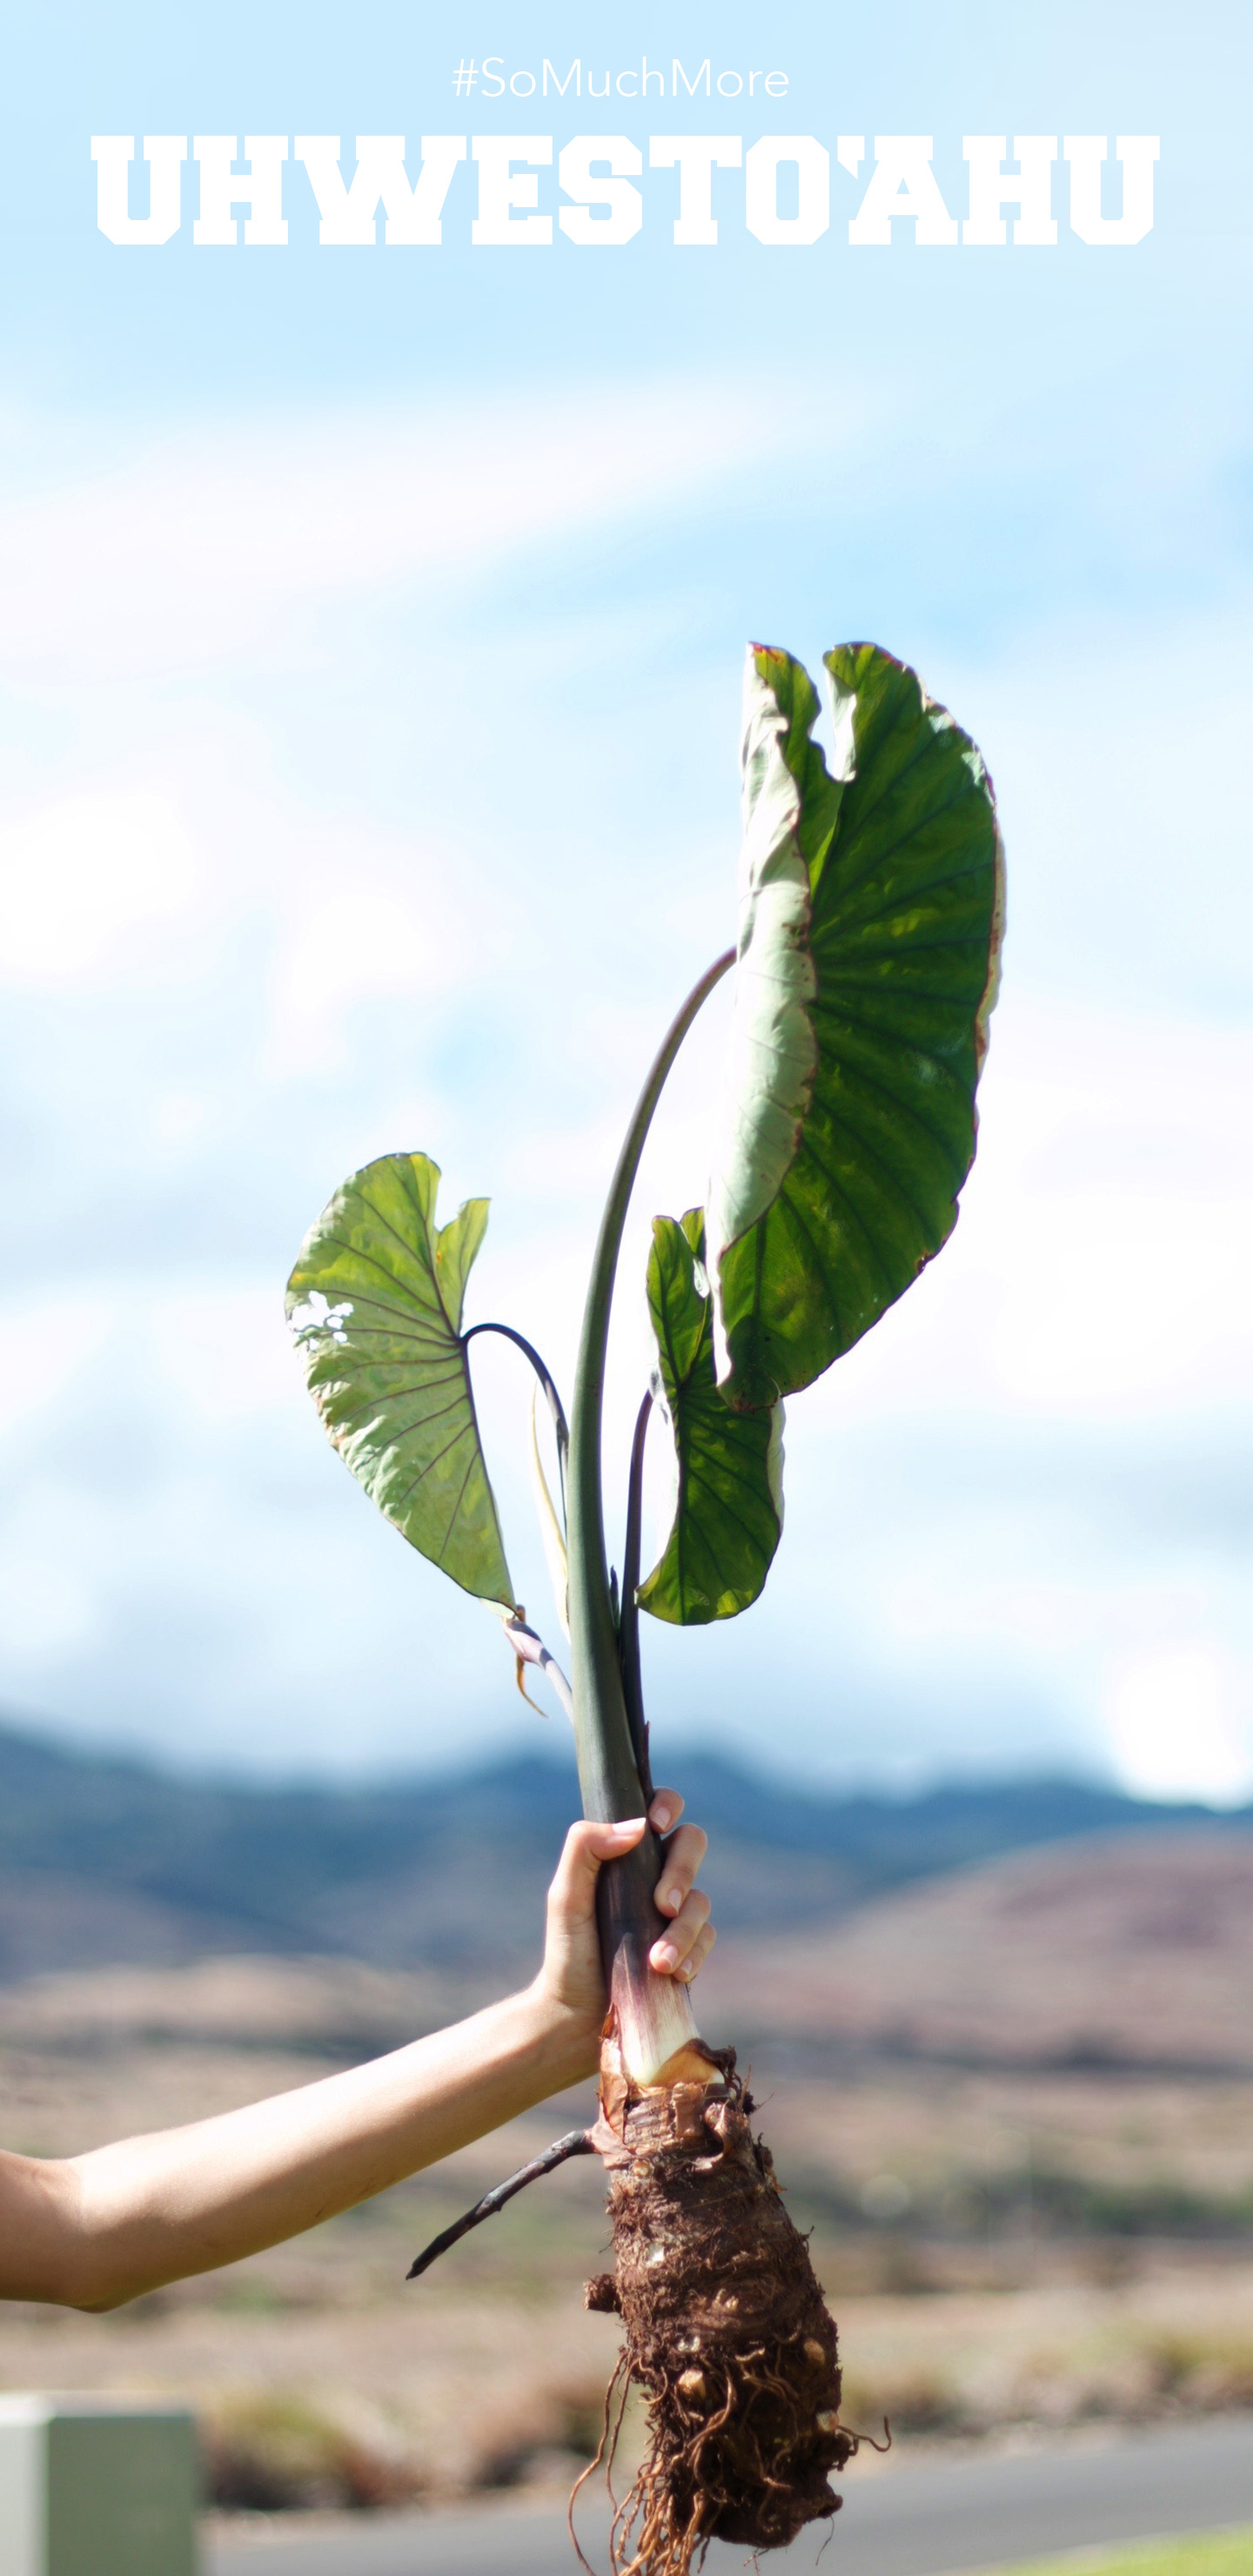 Someone Out Of Frame Holding A Taro Plant Toward The Sky.